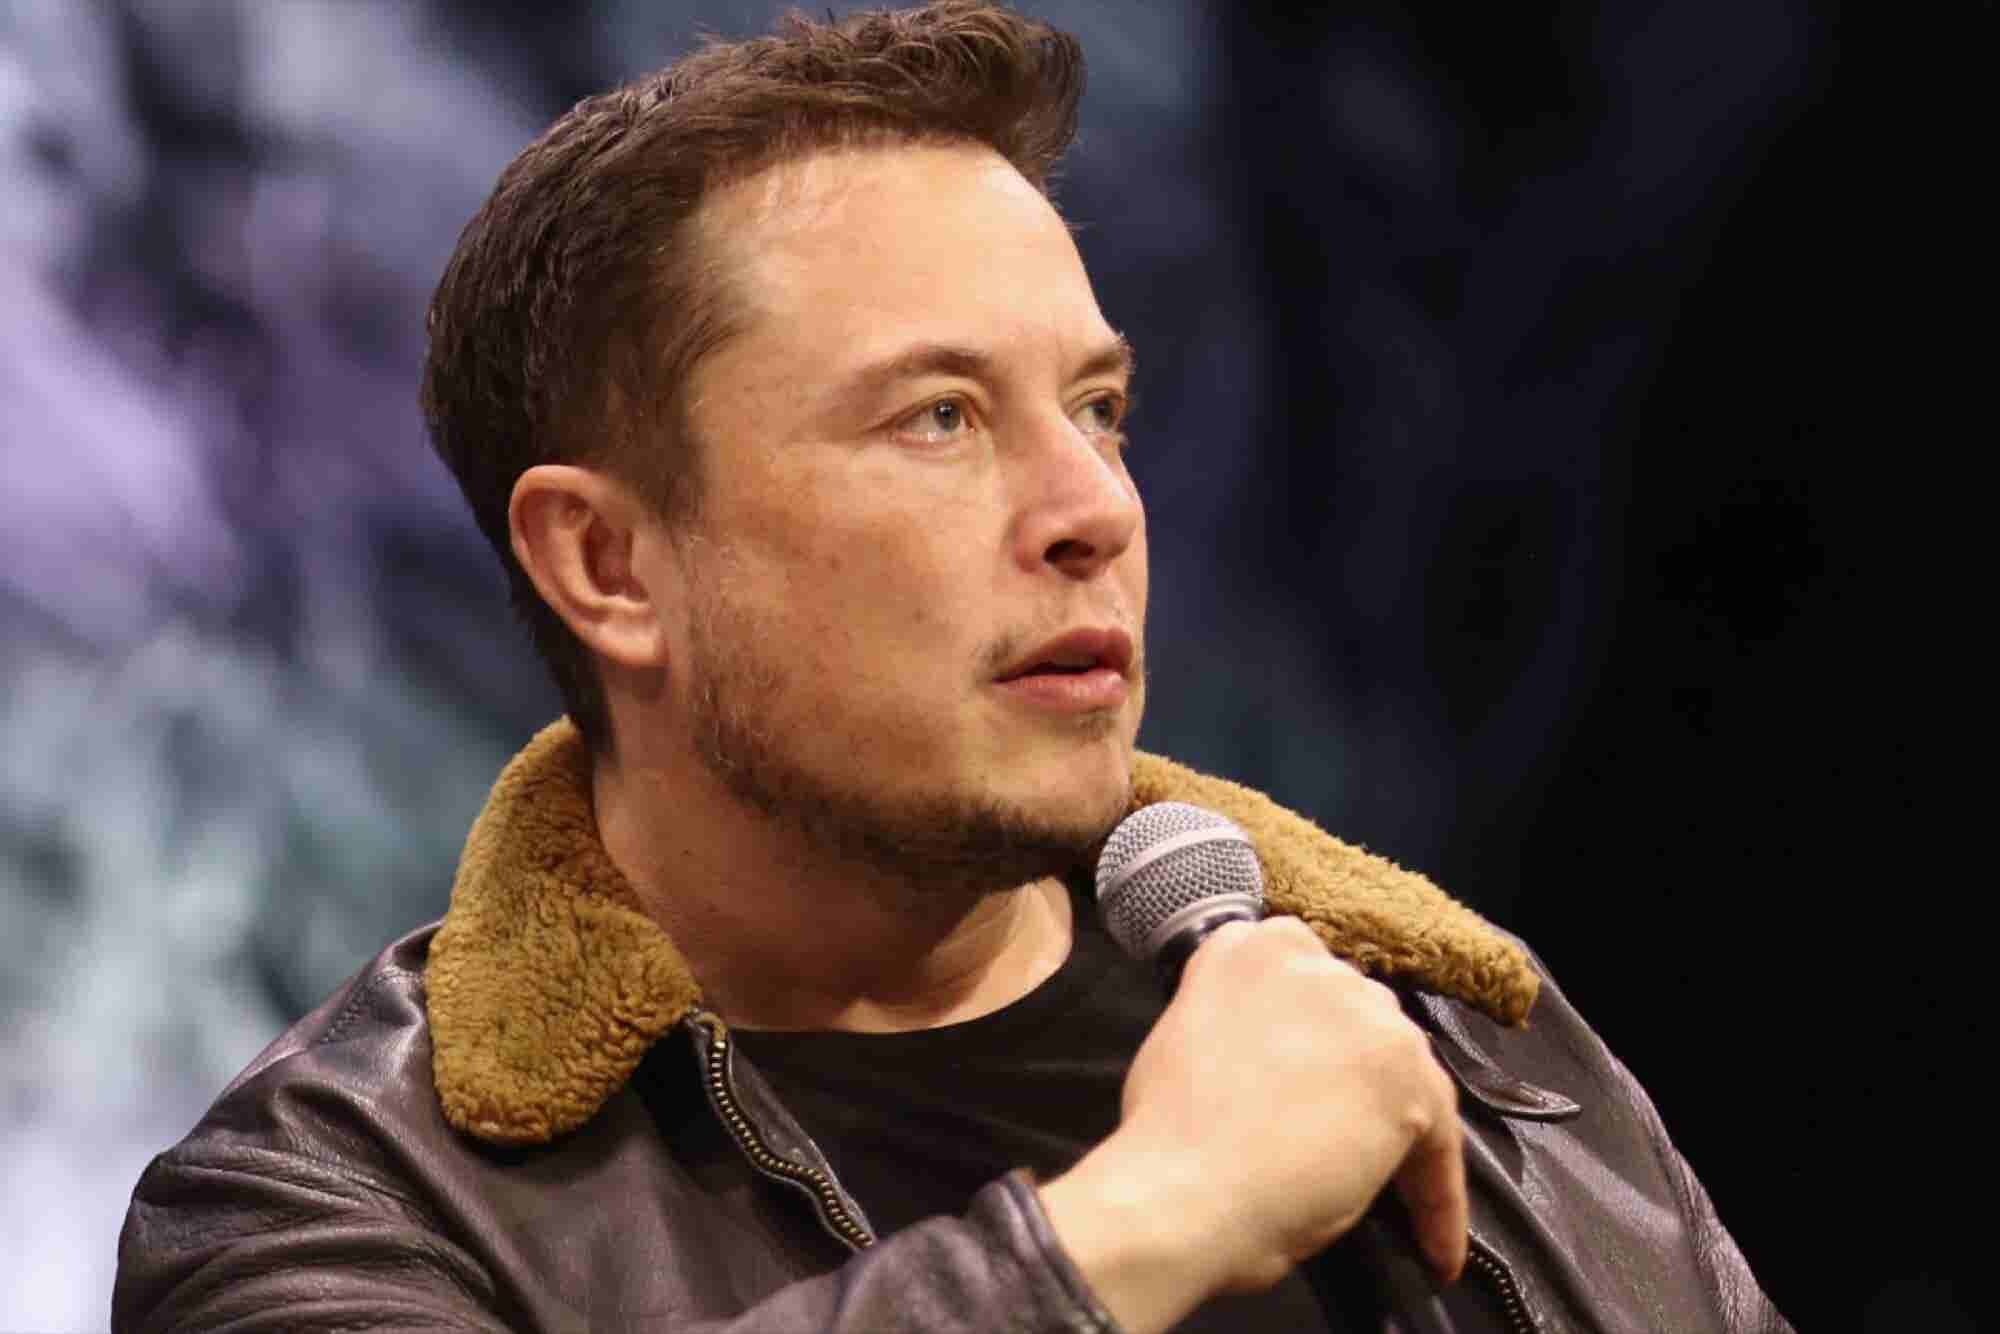 Is Elon Musk Just Messing With Us? Here Are 3 Things to Know Today.